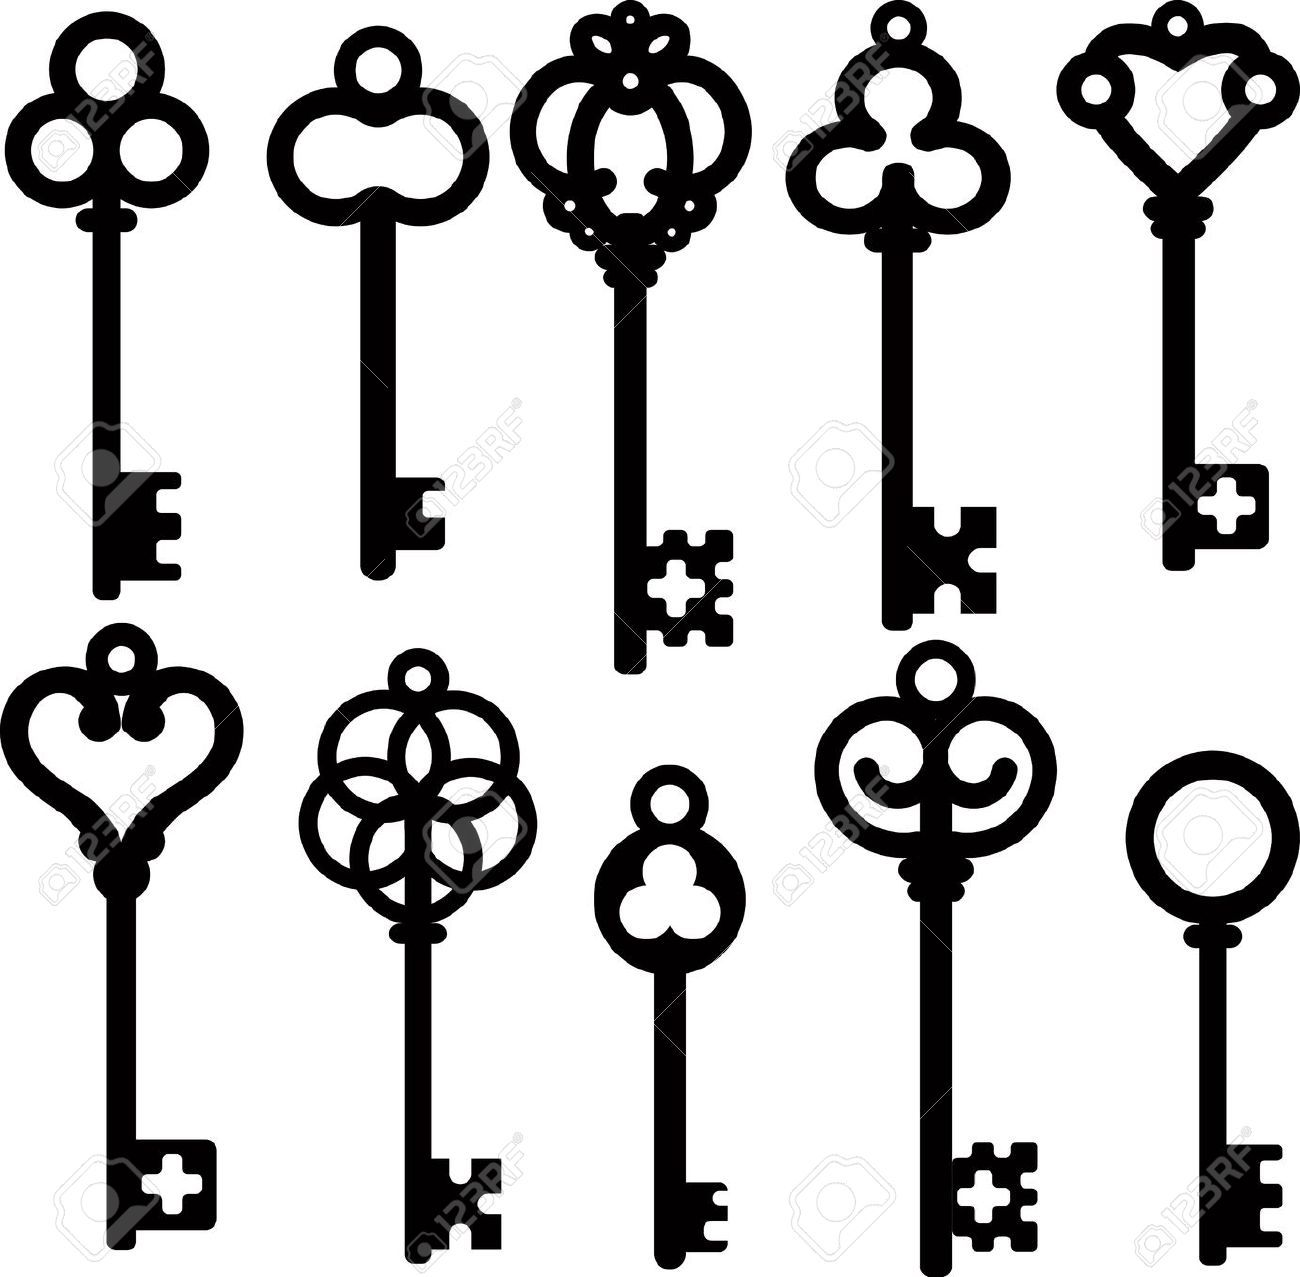 Sleleton key clipart clip art black and white library Stock Vector | LET\'S ALL CUT | Key drawings, Key design, Antique keys clip art black and white library